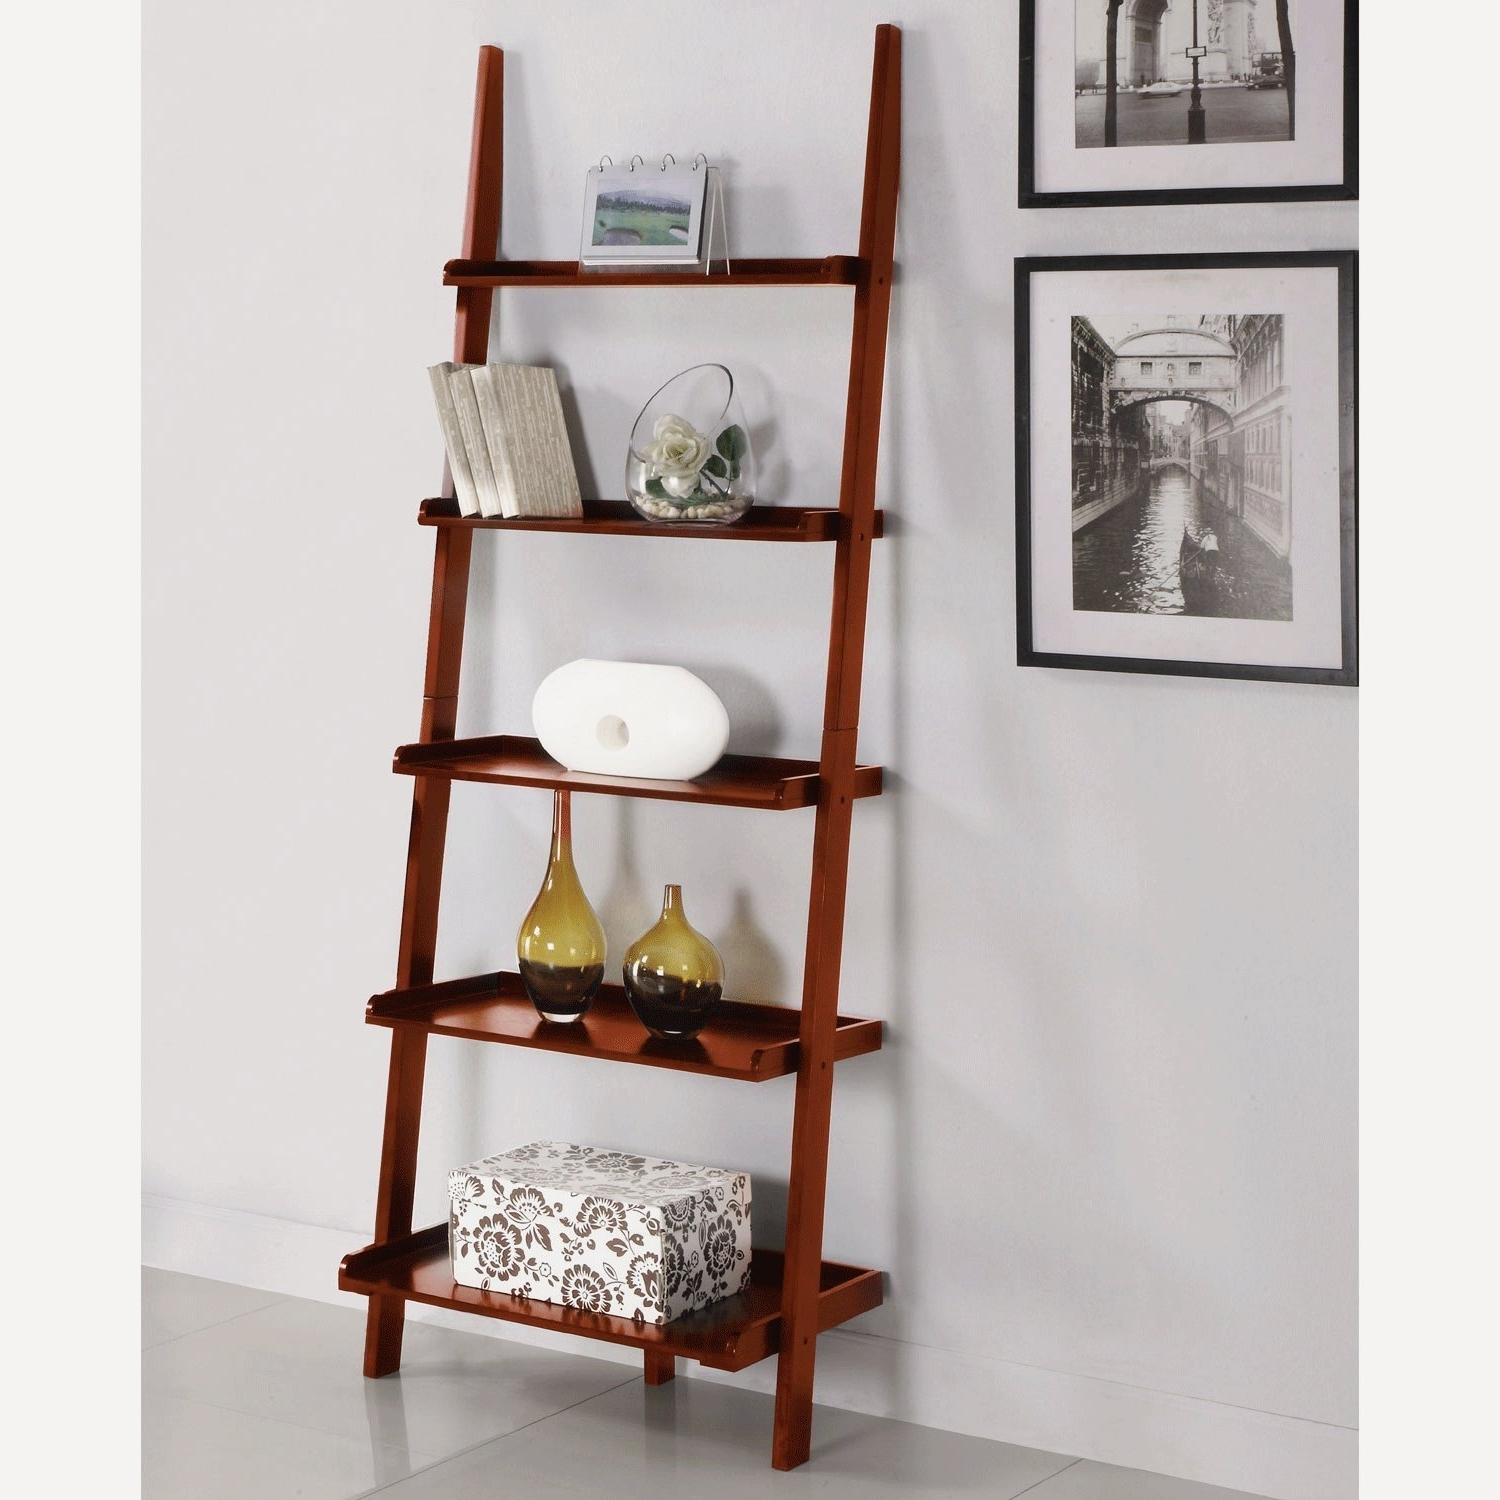 Leaning Ladder Bookcases Inside Well Liked Amazon: Athomemart Leaning Ladder Bookshelf In Cherry Finish (View 9 of 15)